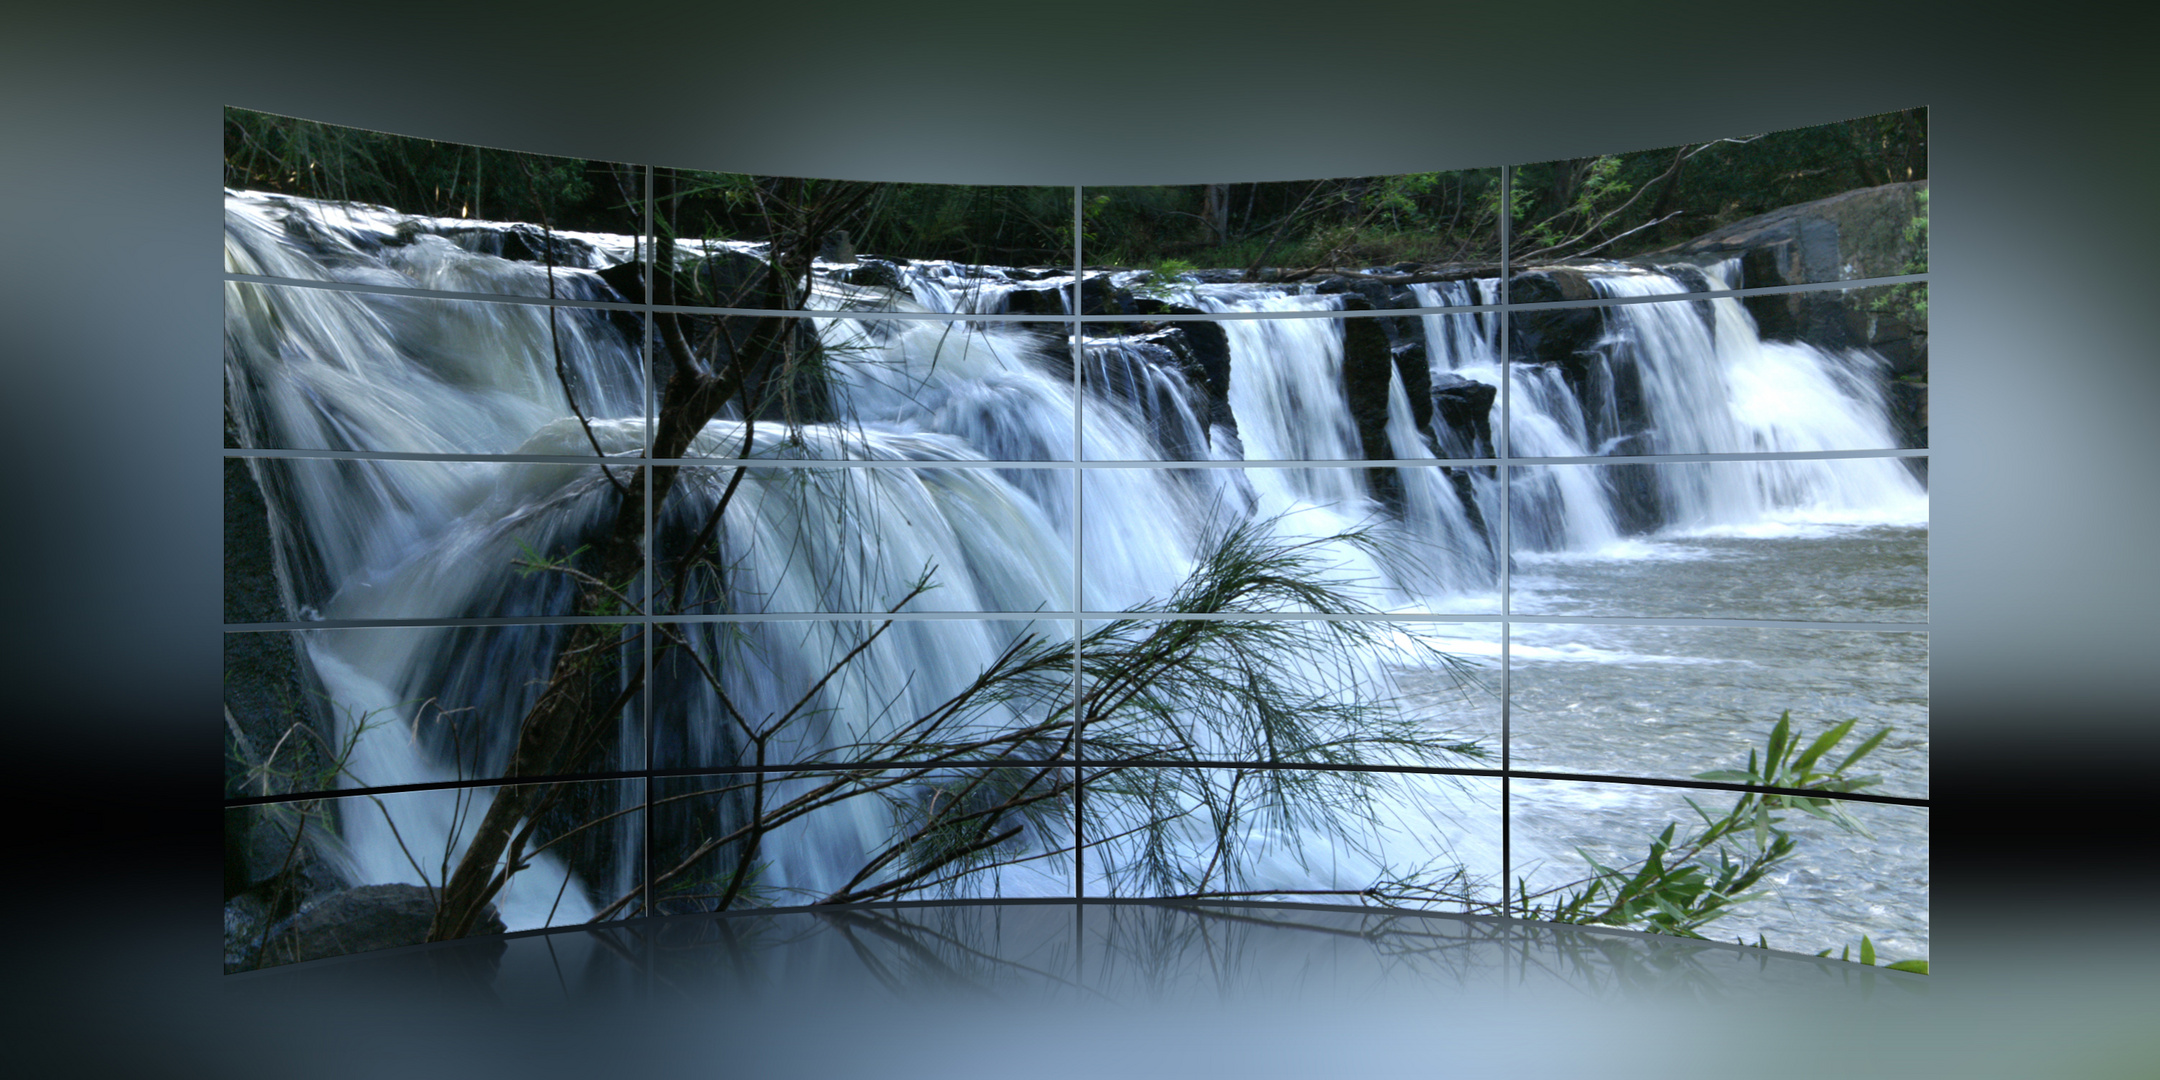 + Endeavour Falls in action +